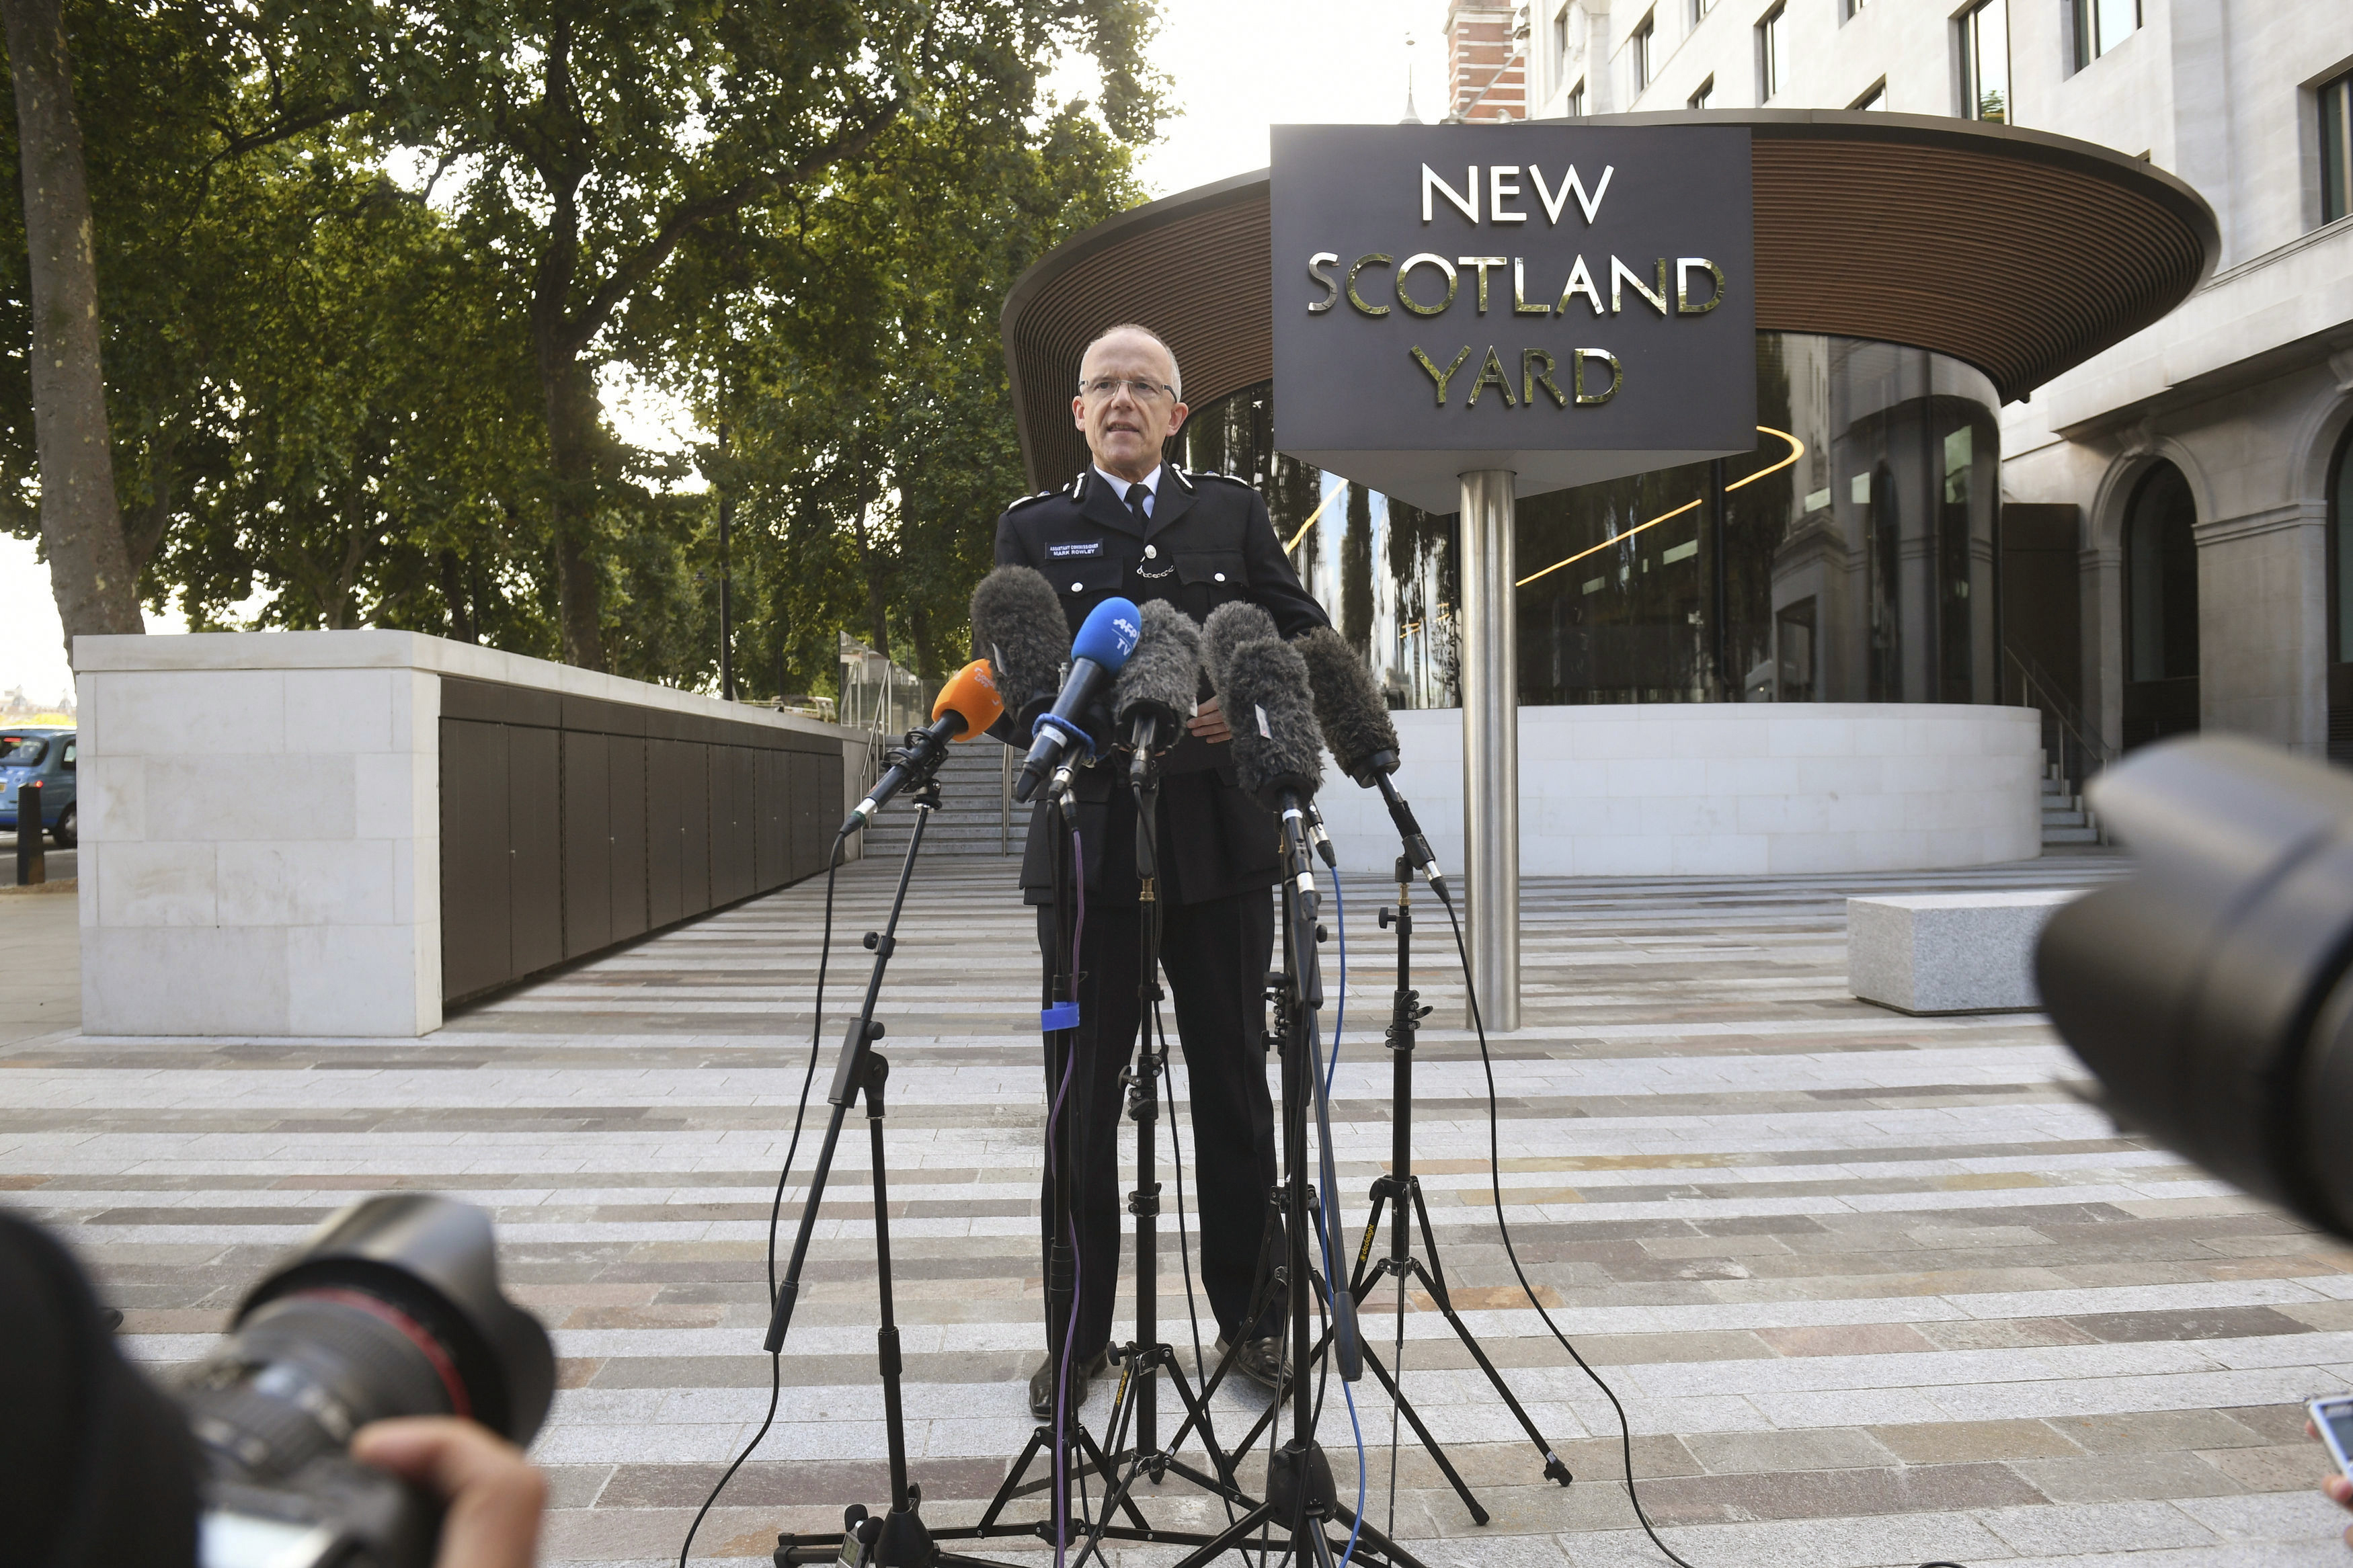 "<div class=""meta image-caption""><div class=""origin-logo origin-image none""><span>none</span></div><span class=""caption-text"">Metropolitan Police Assistant Commissioner Mark Rowley speaks to the media outside New Scotland Yard,  gives a statement about a terrorist attack at Parsons Green subway station. (Victoria Jones/PA via AP)</span></div>"